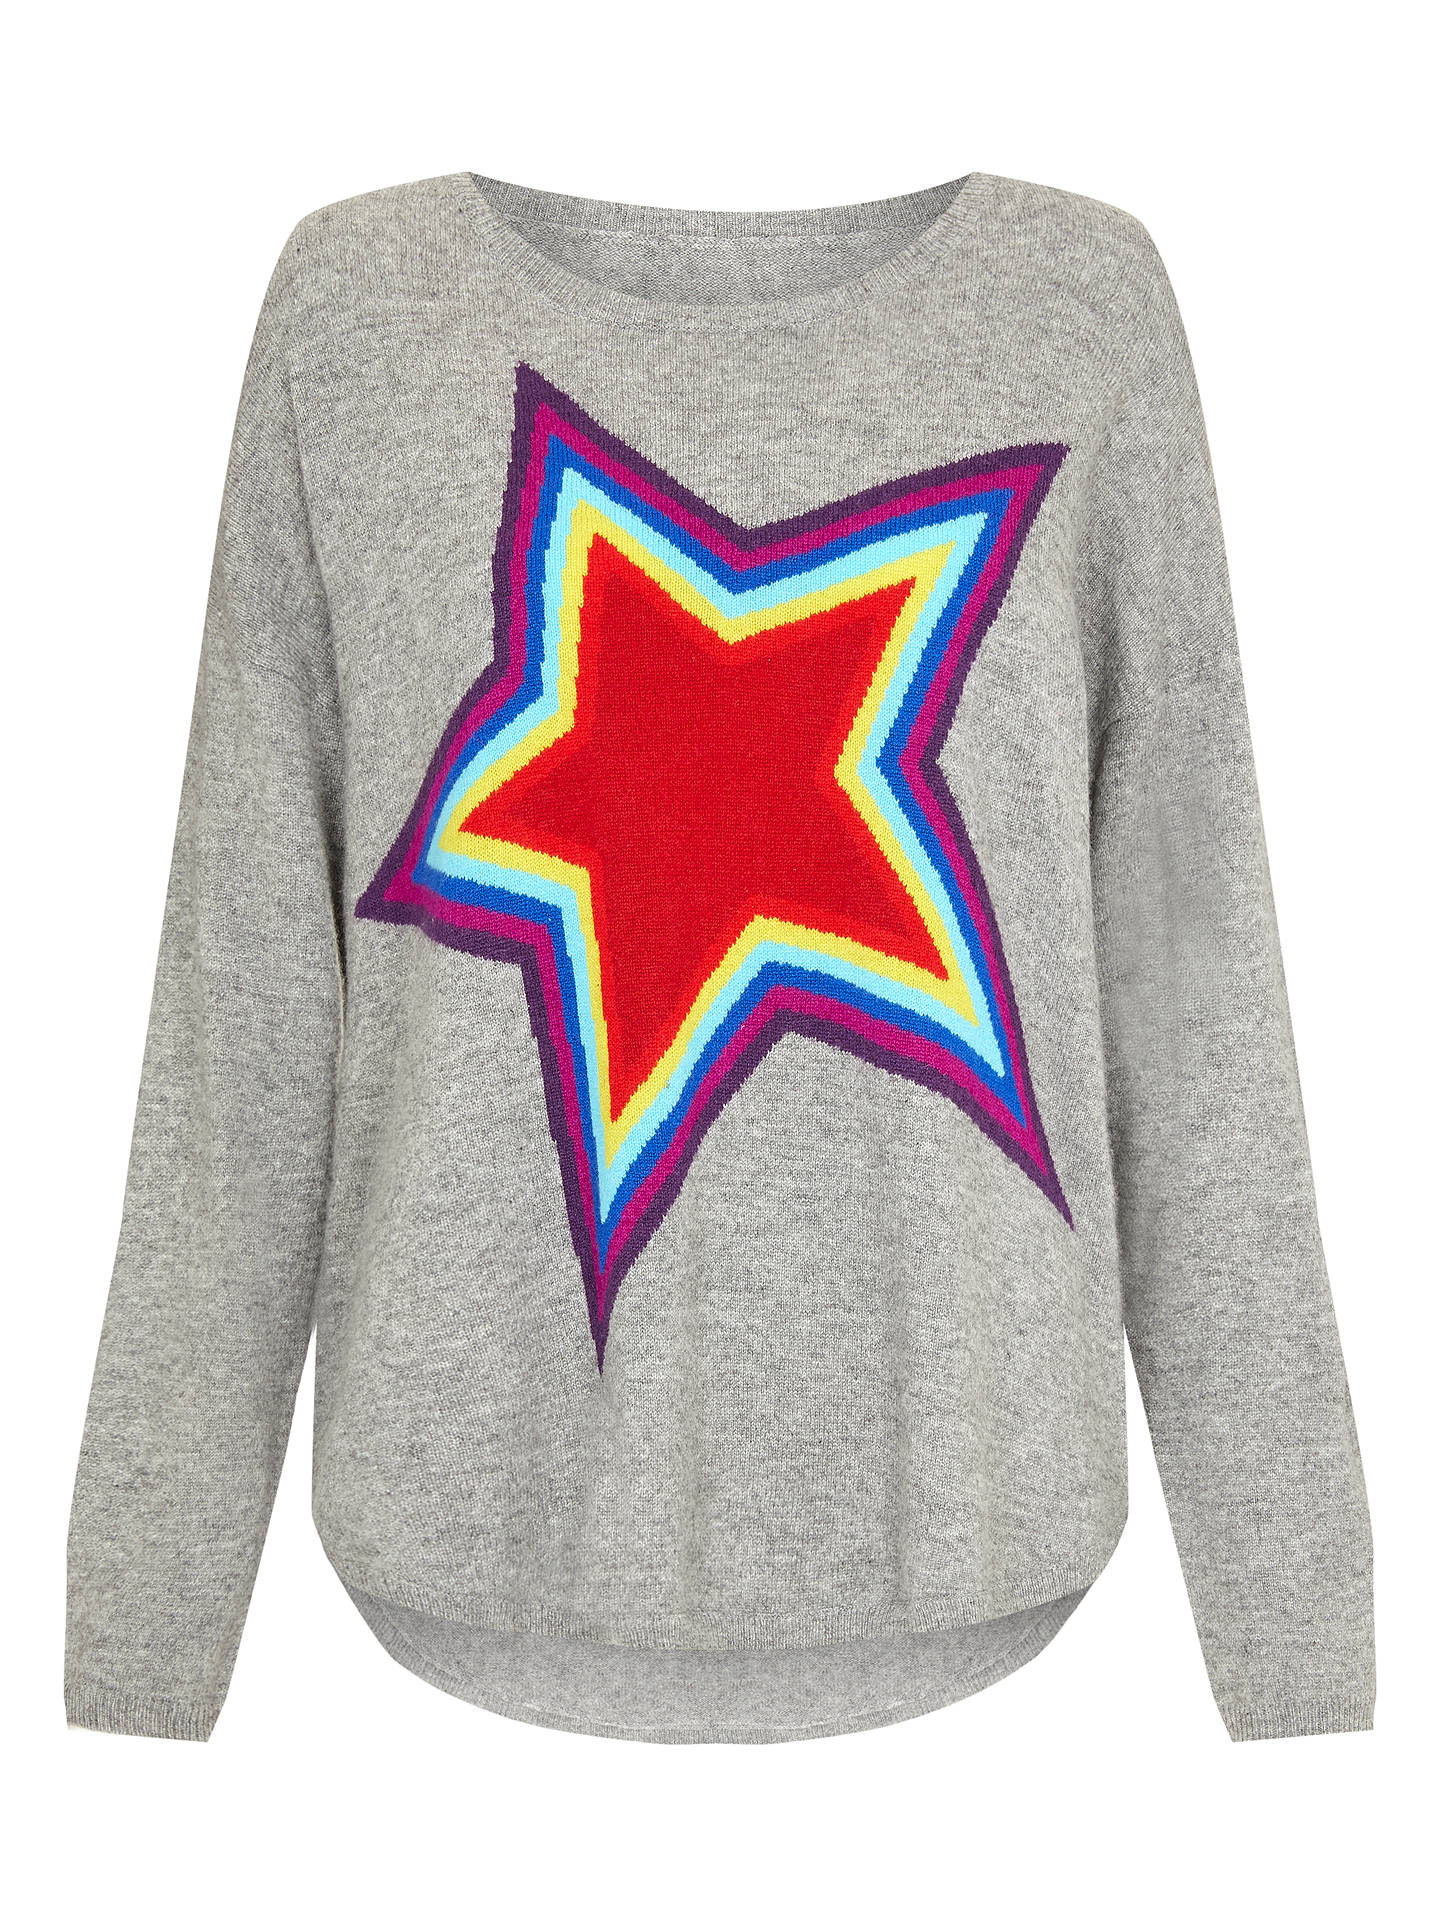 BuyWyse London Ziggy Rainbow Star Cashmere Jumper, Grey, S Online at johnlewis.com